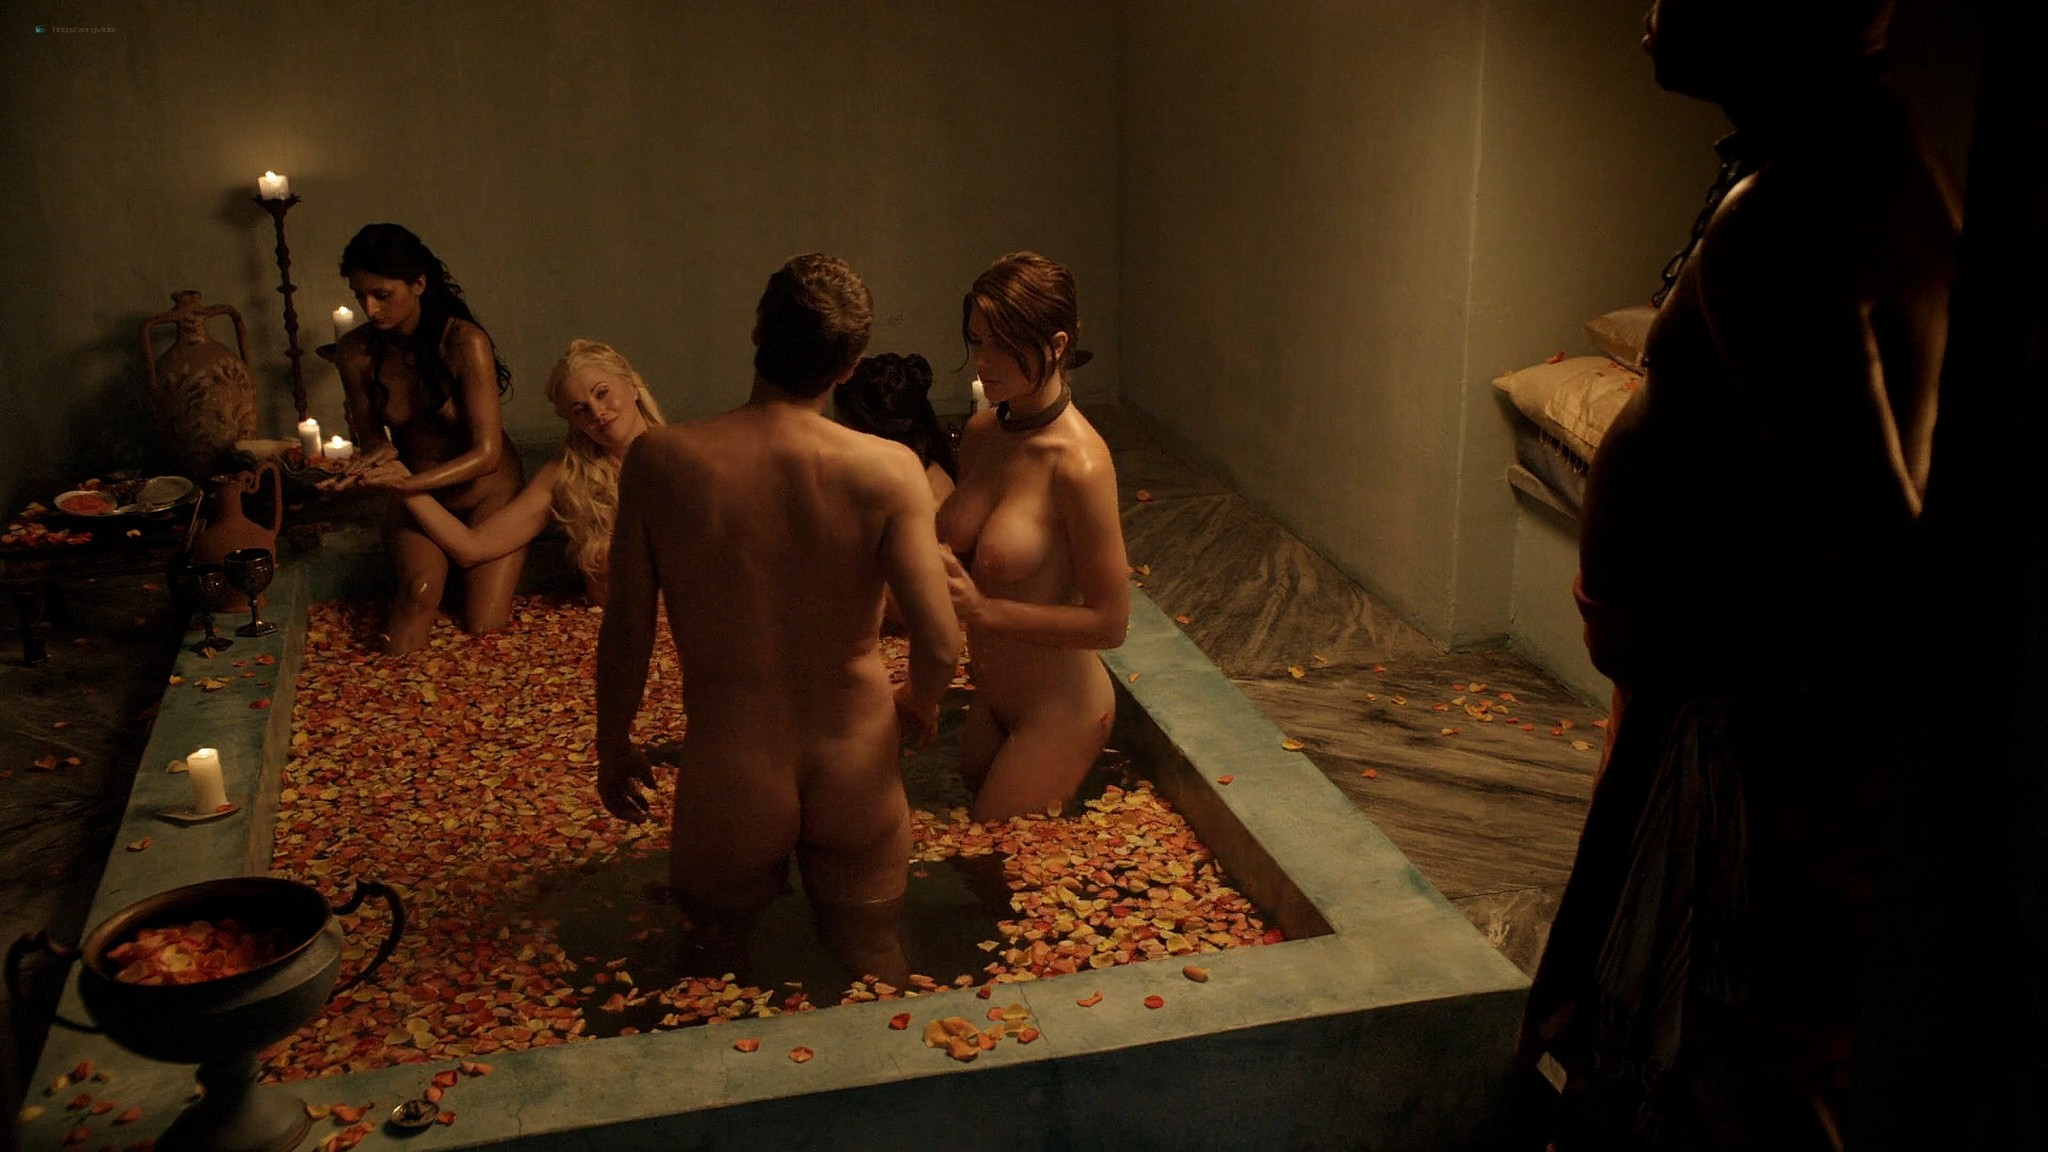 Lucy Lawless nude Lesley-Ann Brandt and other nude sex too - Spartacus (2010) Delicate Things s1e6 HD 1080p BluRay (15)